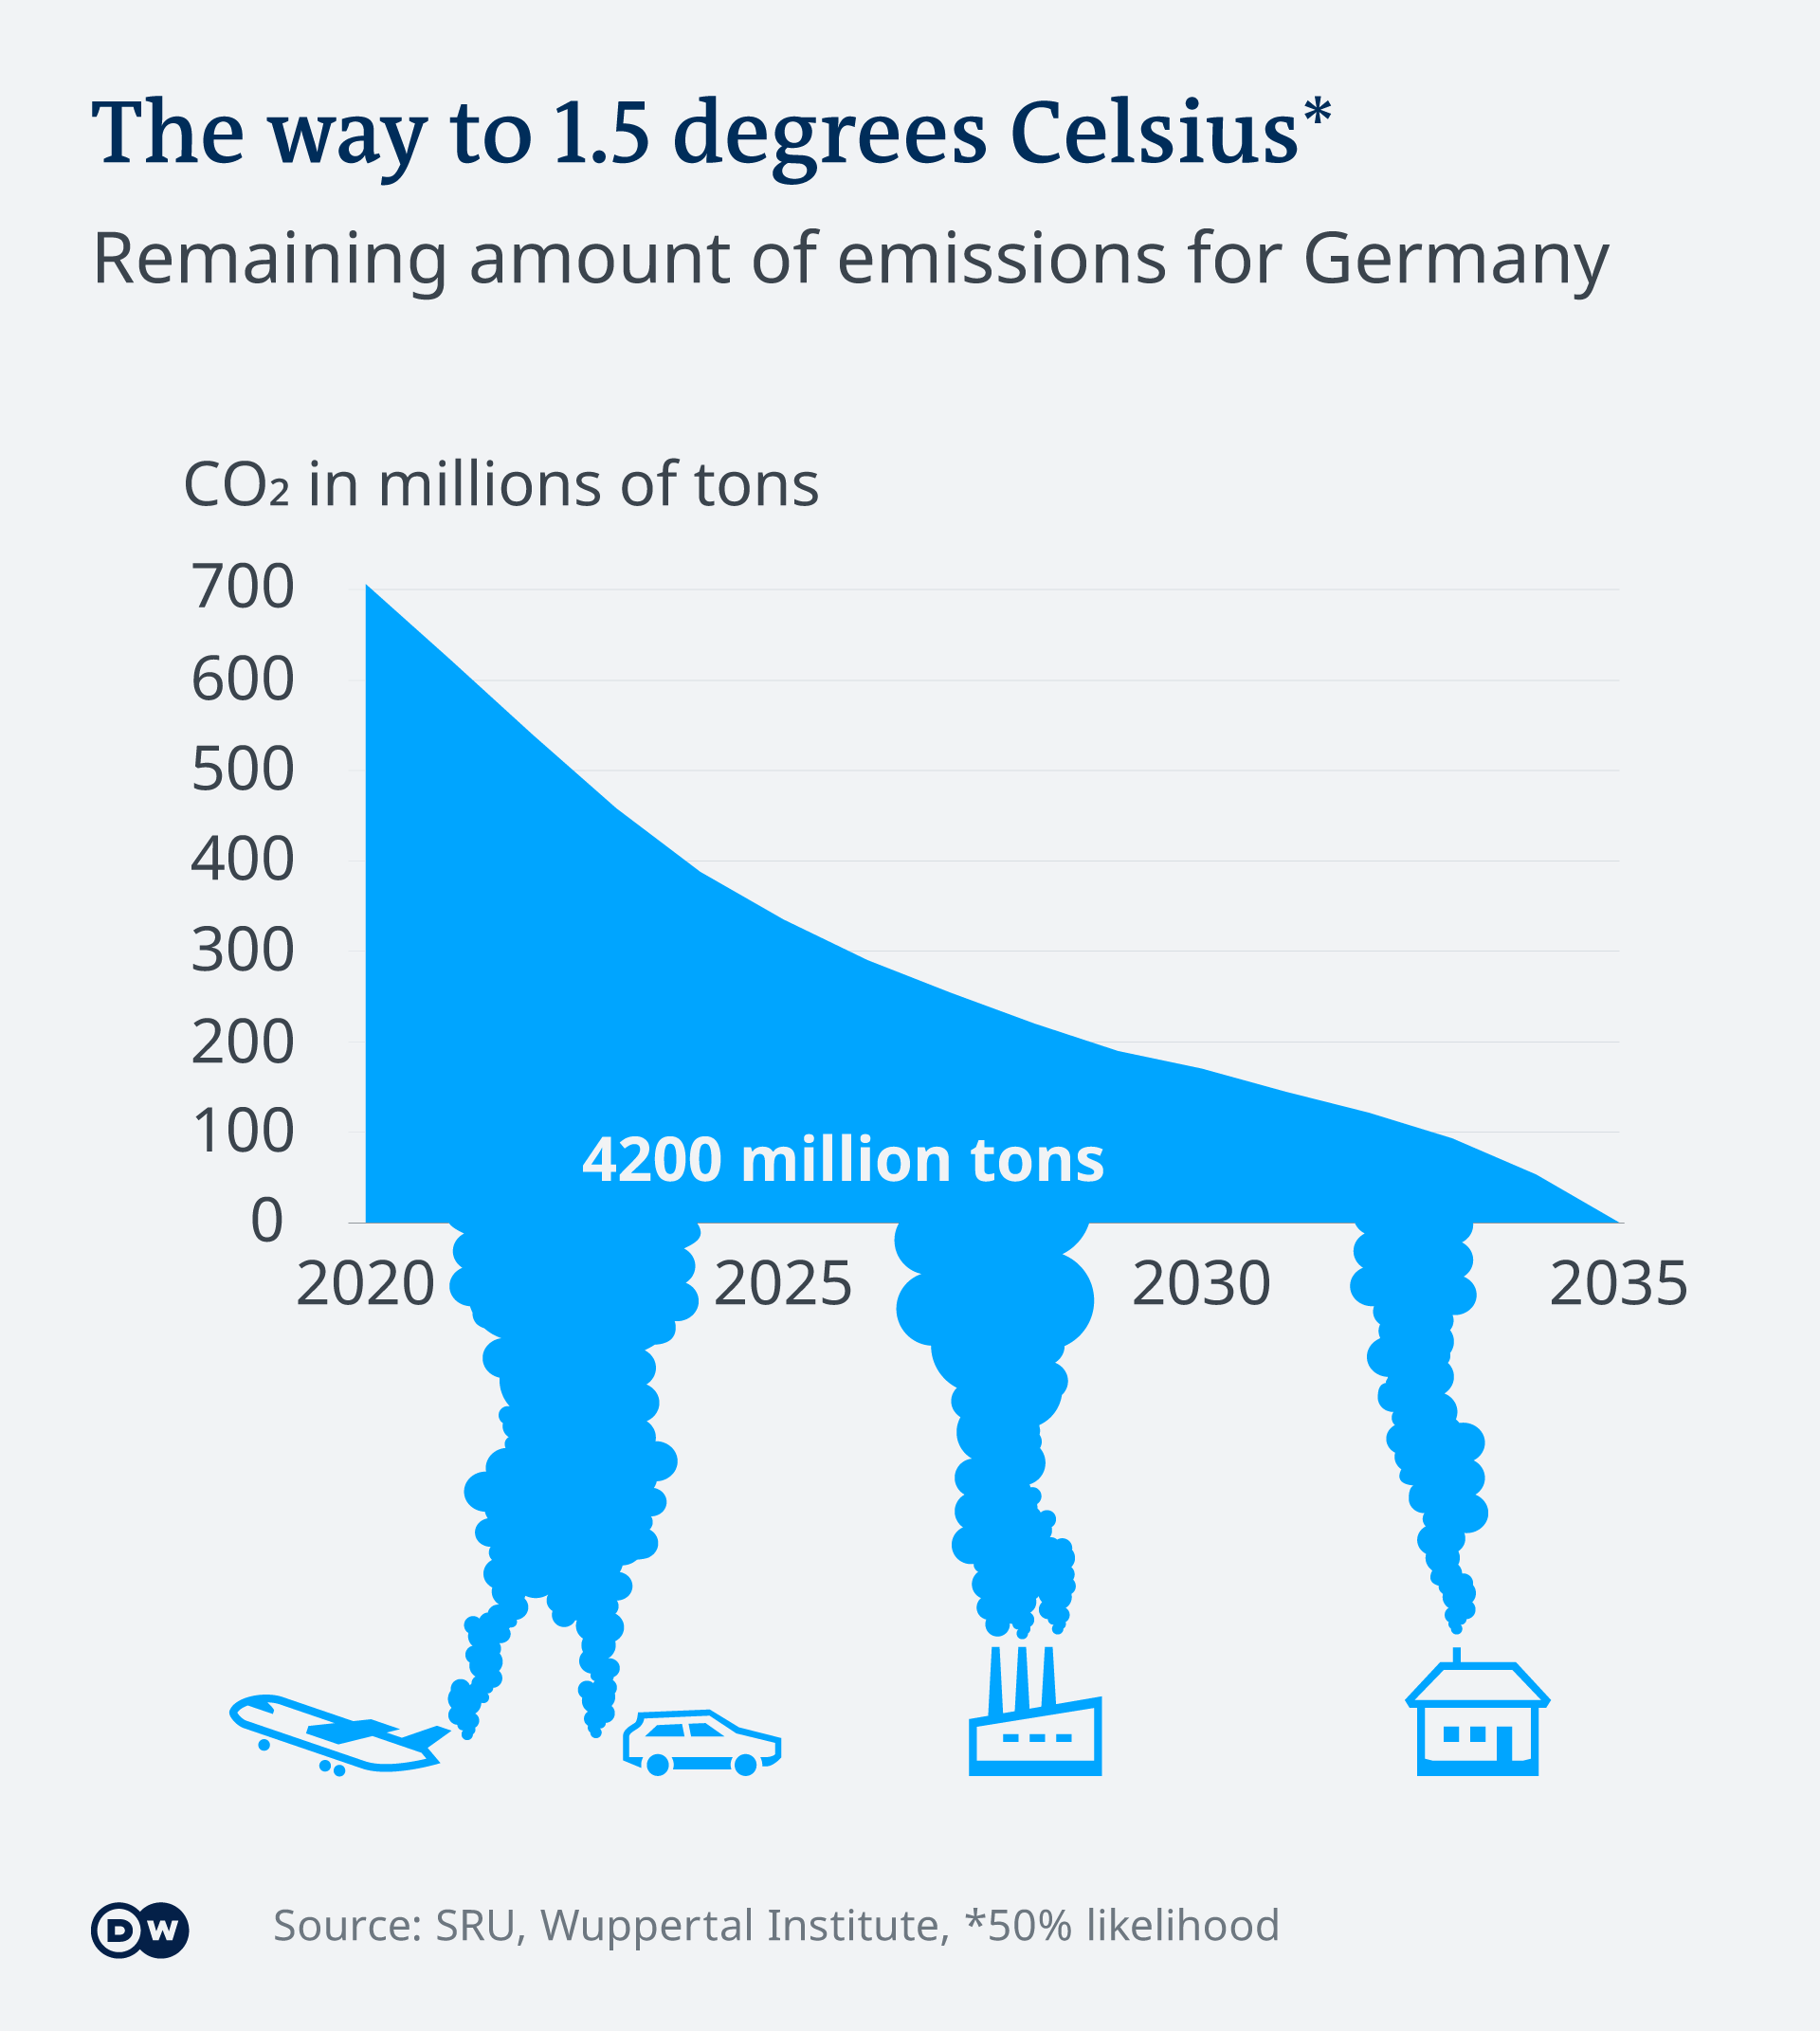 Infographic showing the way to limit emissions to 1.5 degrees Celsius above 1990 levels